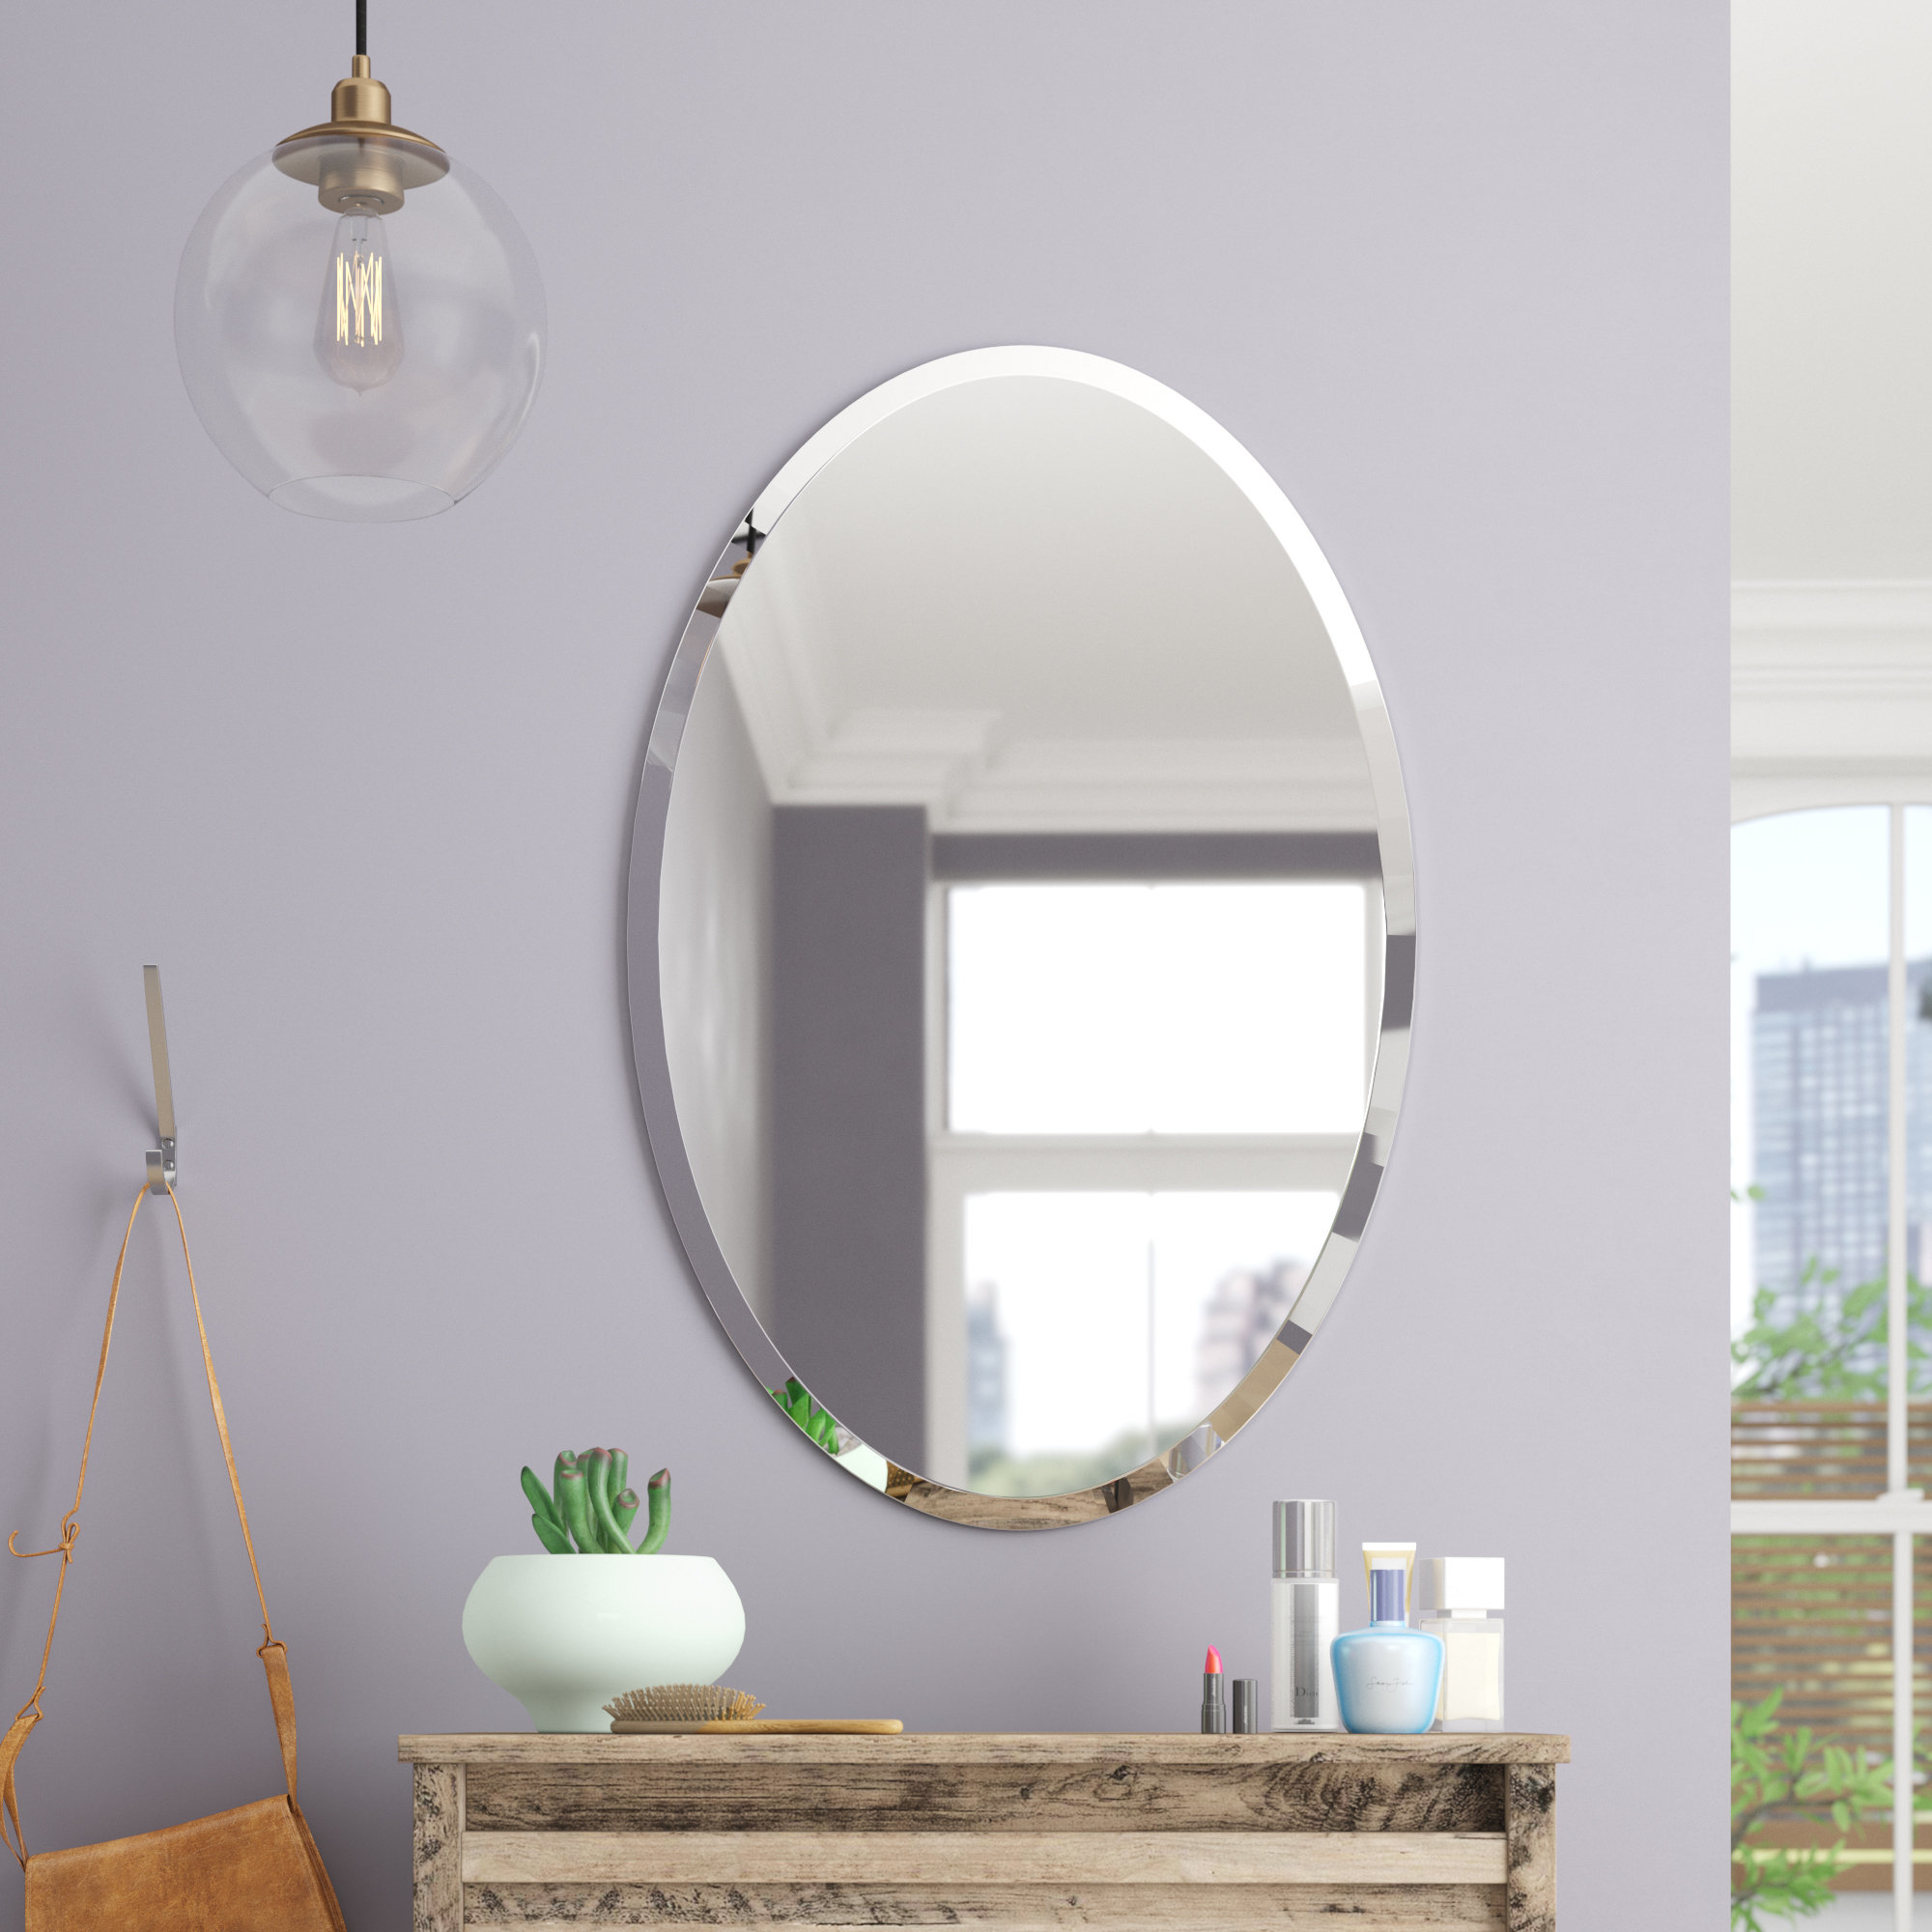 24 Inch Mirror | Wayfair Intended For Luna Accent Mirrors (View 1 of 30)